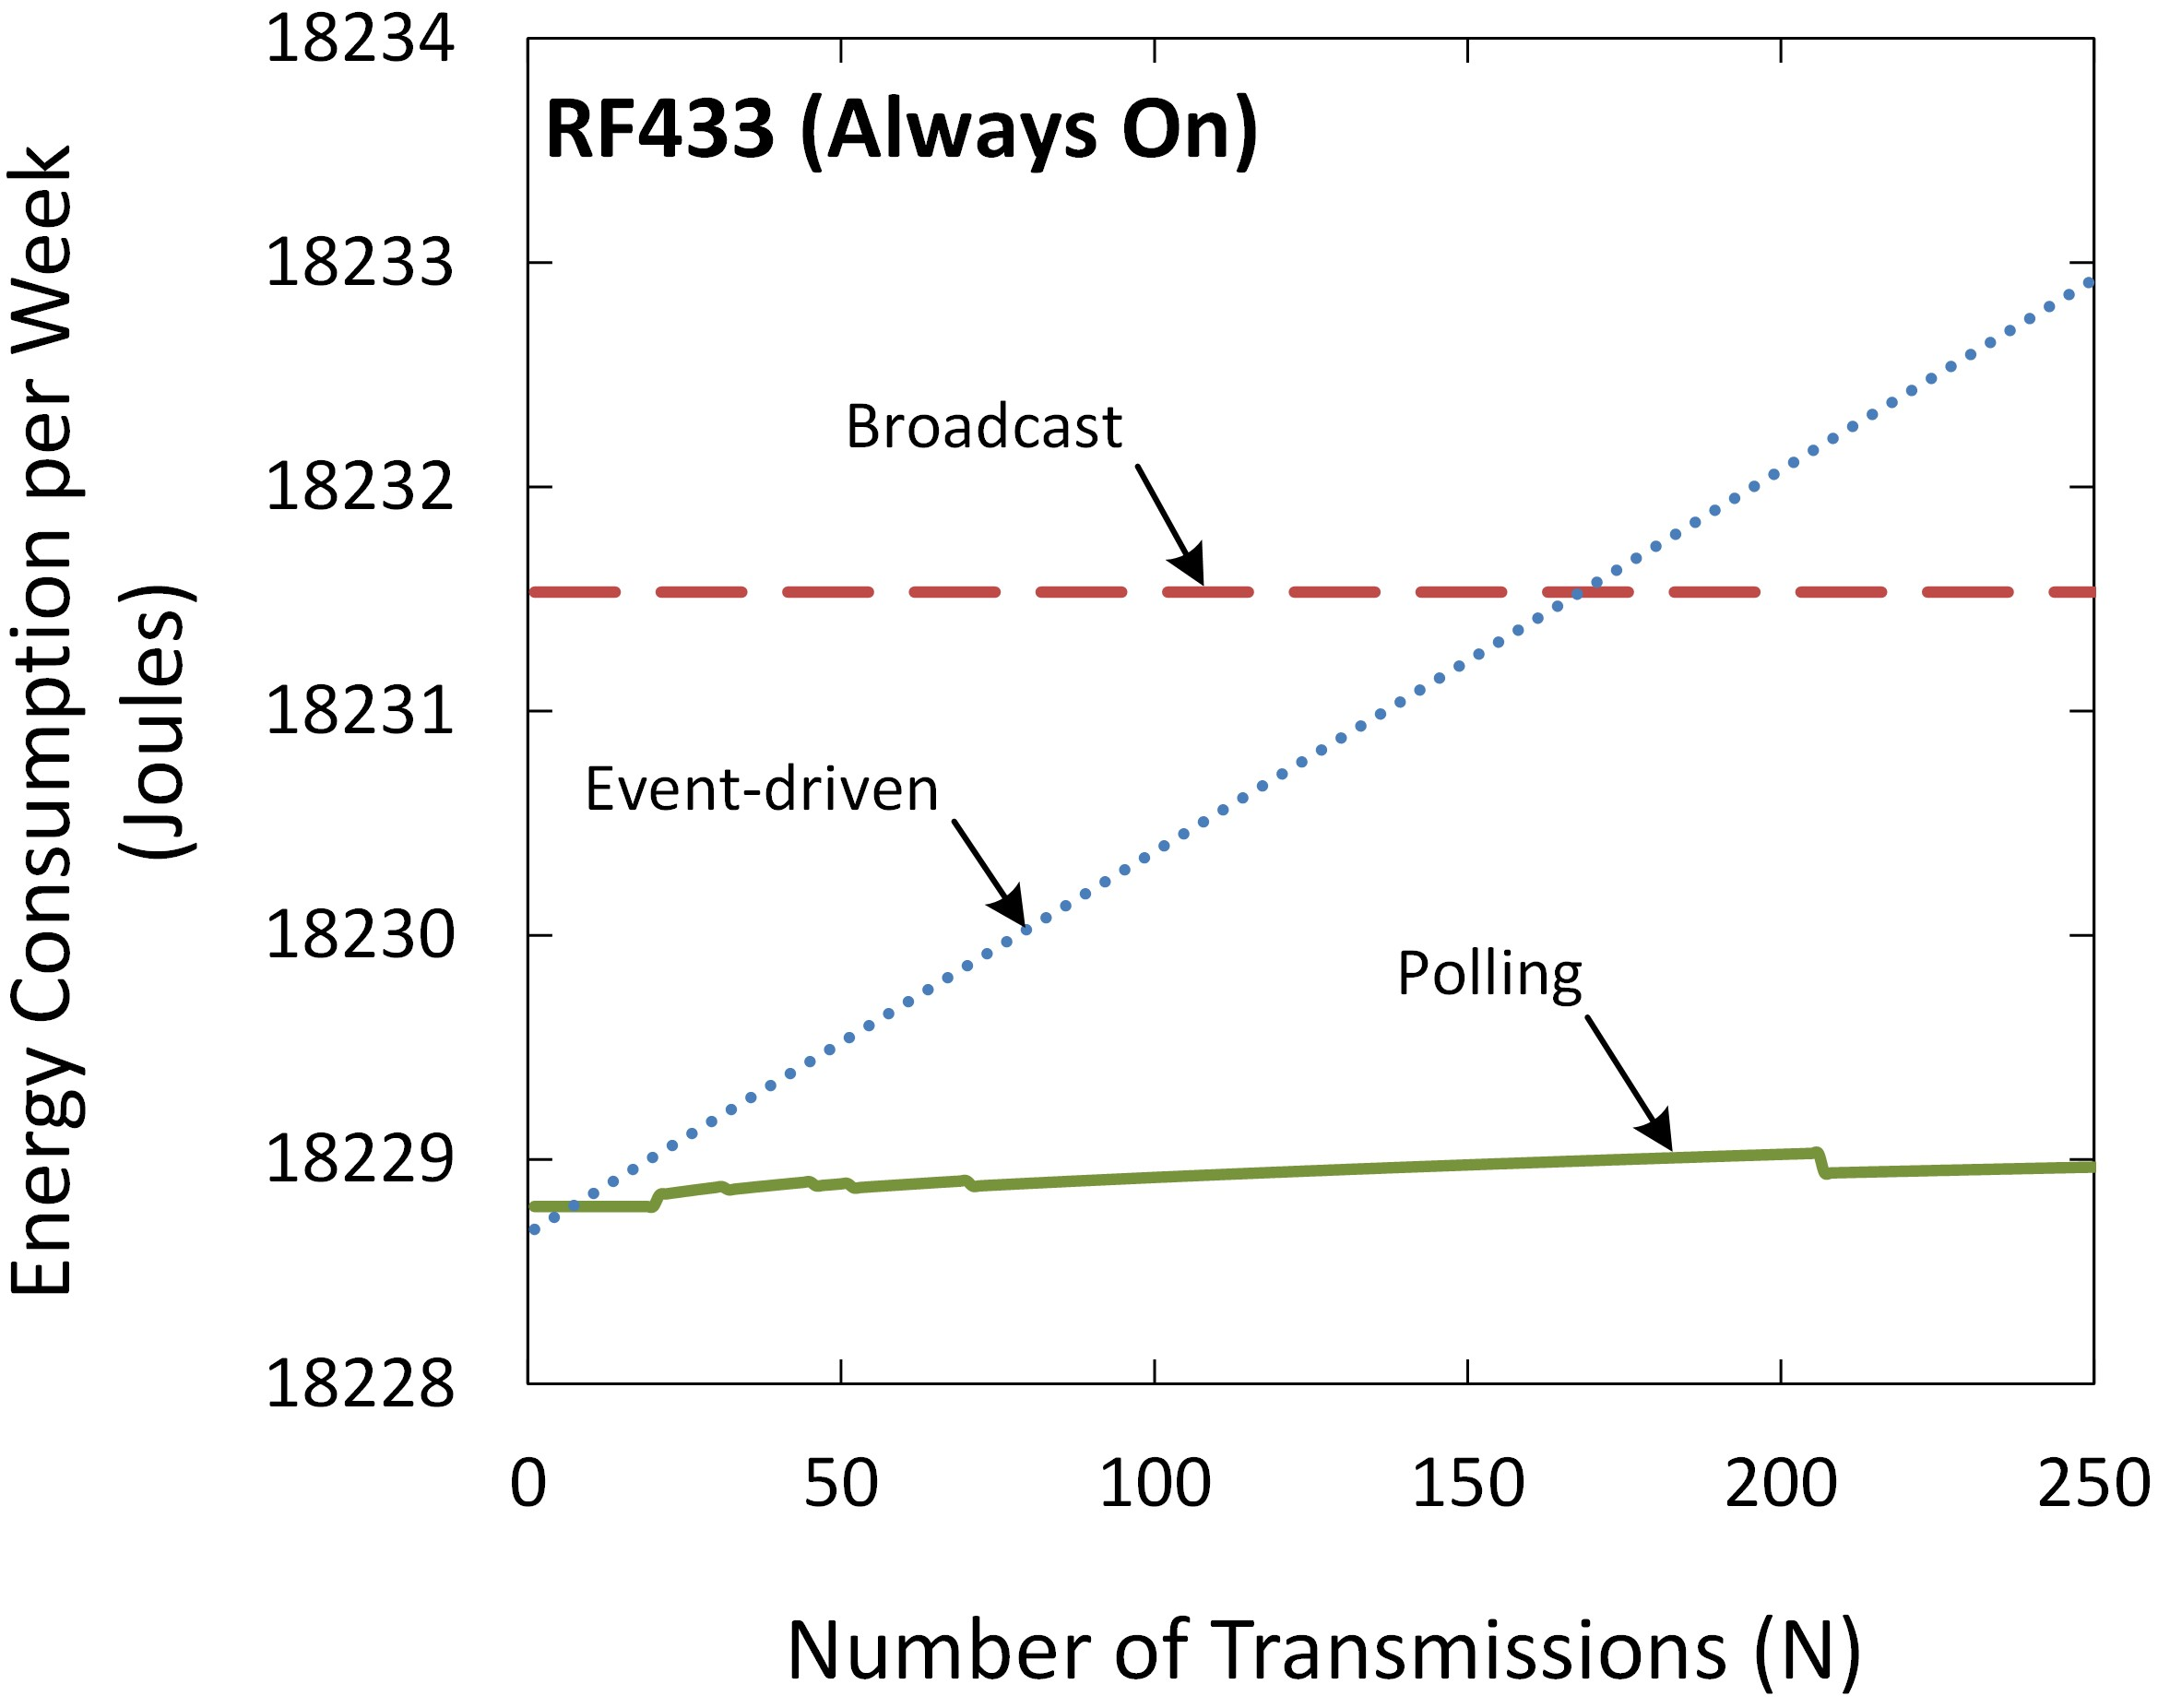 Figure 10. Energy consumption per week of an RF433 interface (Always On).